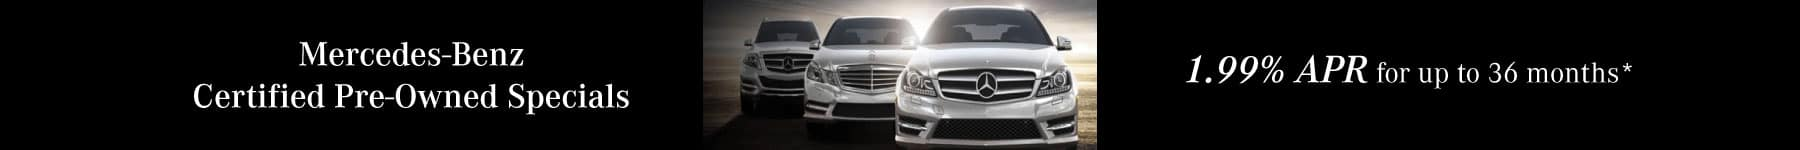 Mercedes-benz of beaverton mercedes certified pre owned specials